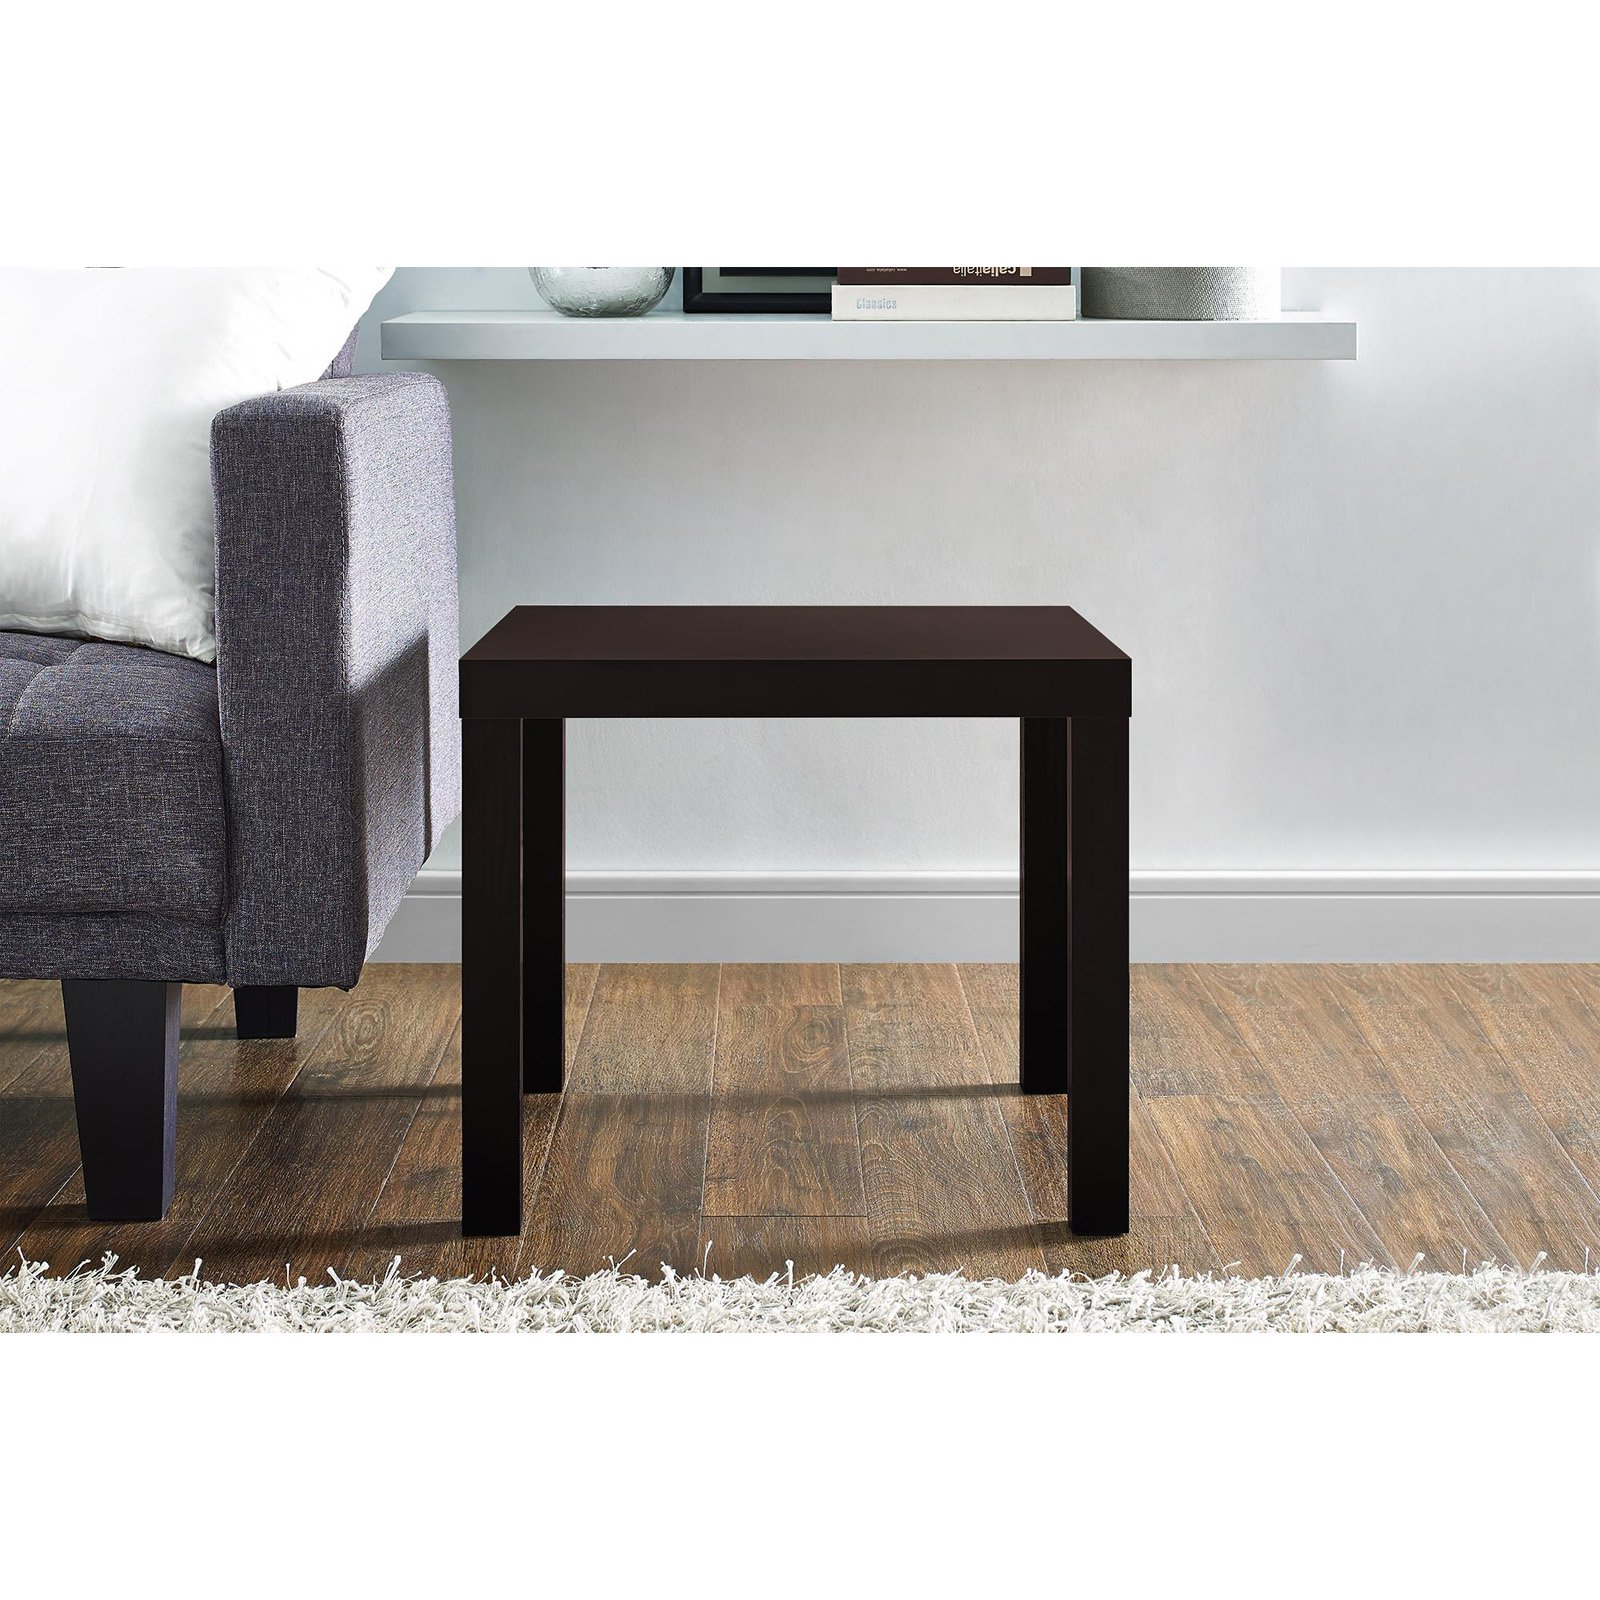 ameriwood industries dhp parsons end table products modern black wood grain barnwood plans square mission coffee toy box kmart ethan allen furniture houston offers chennai acme